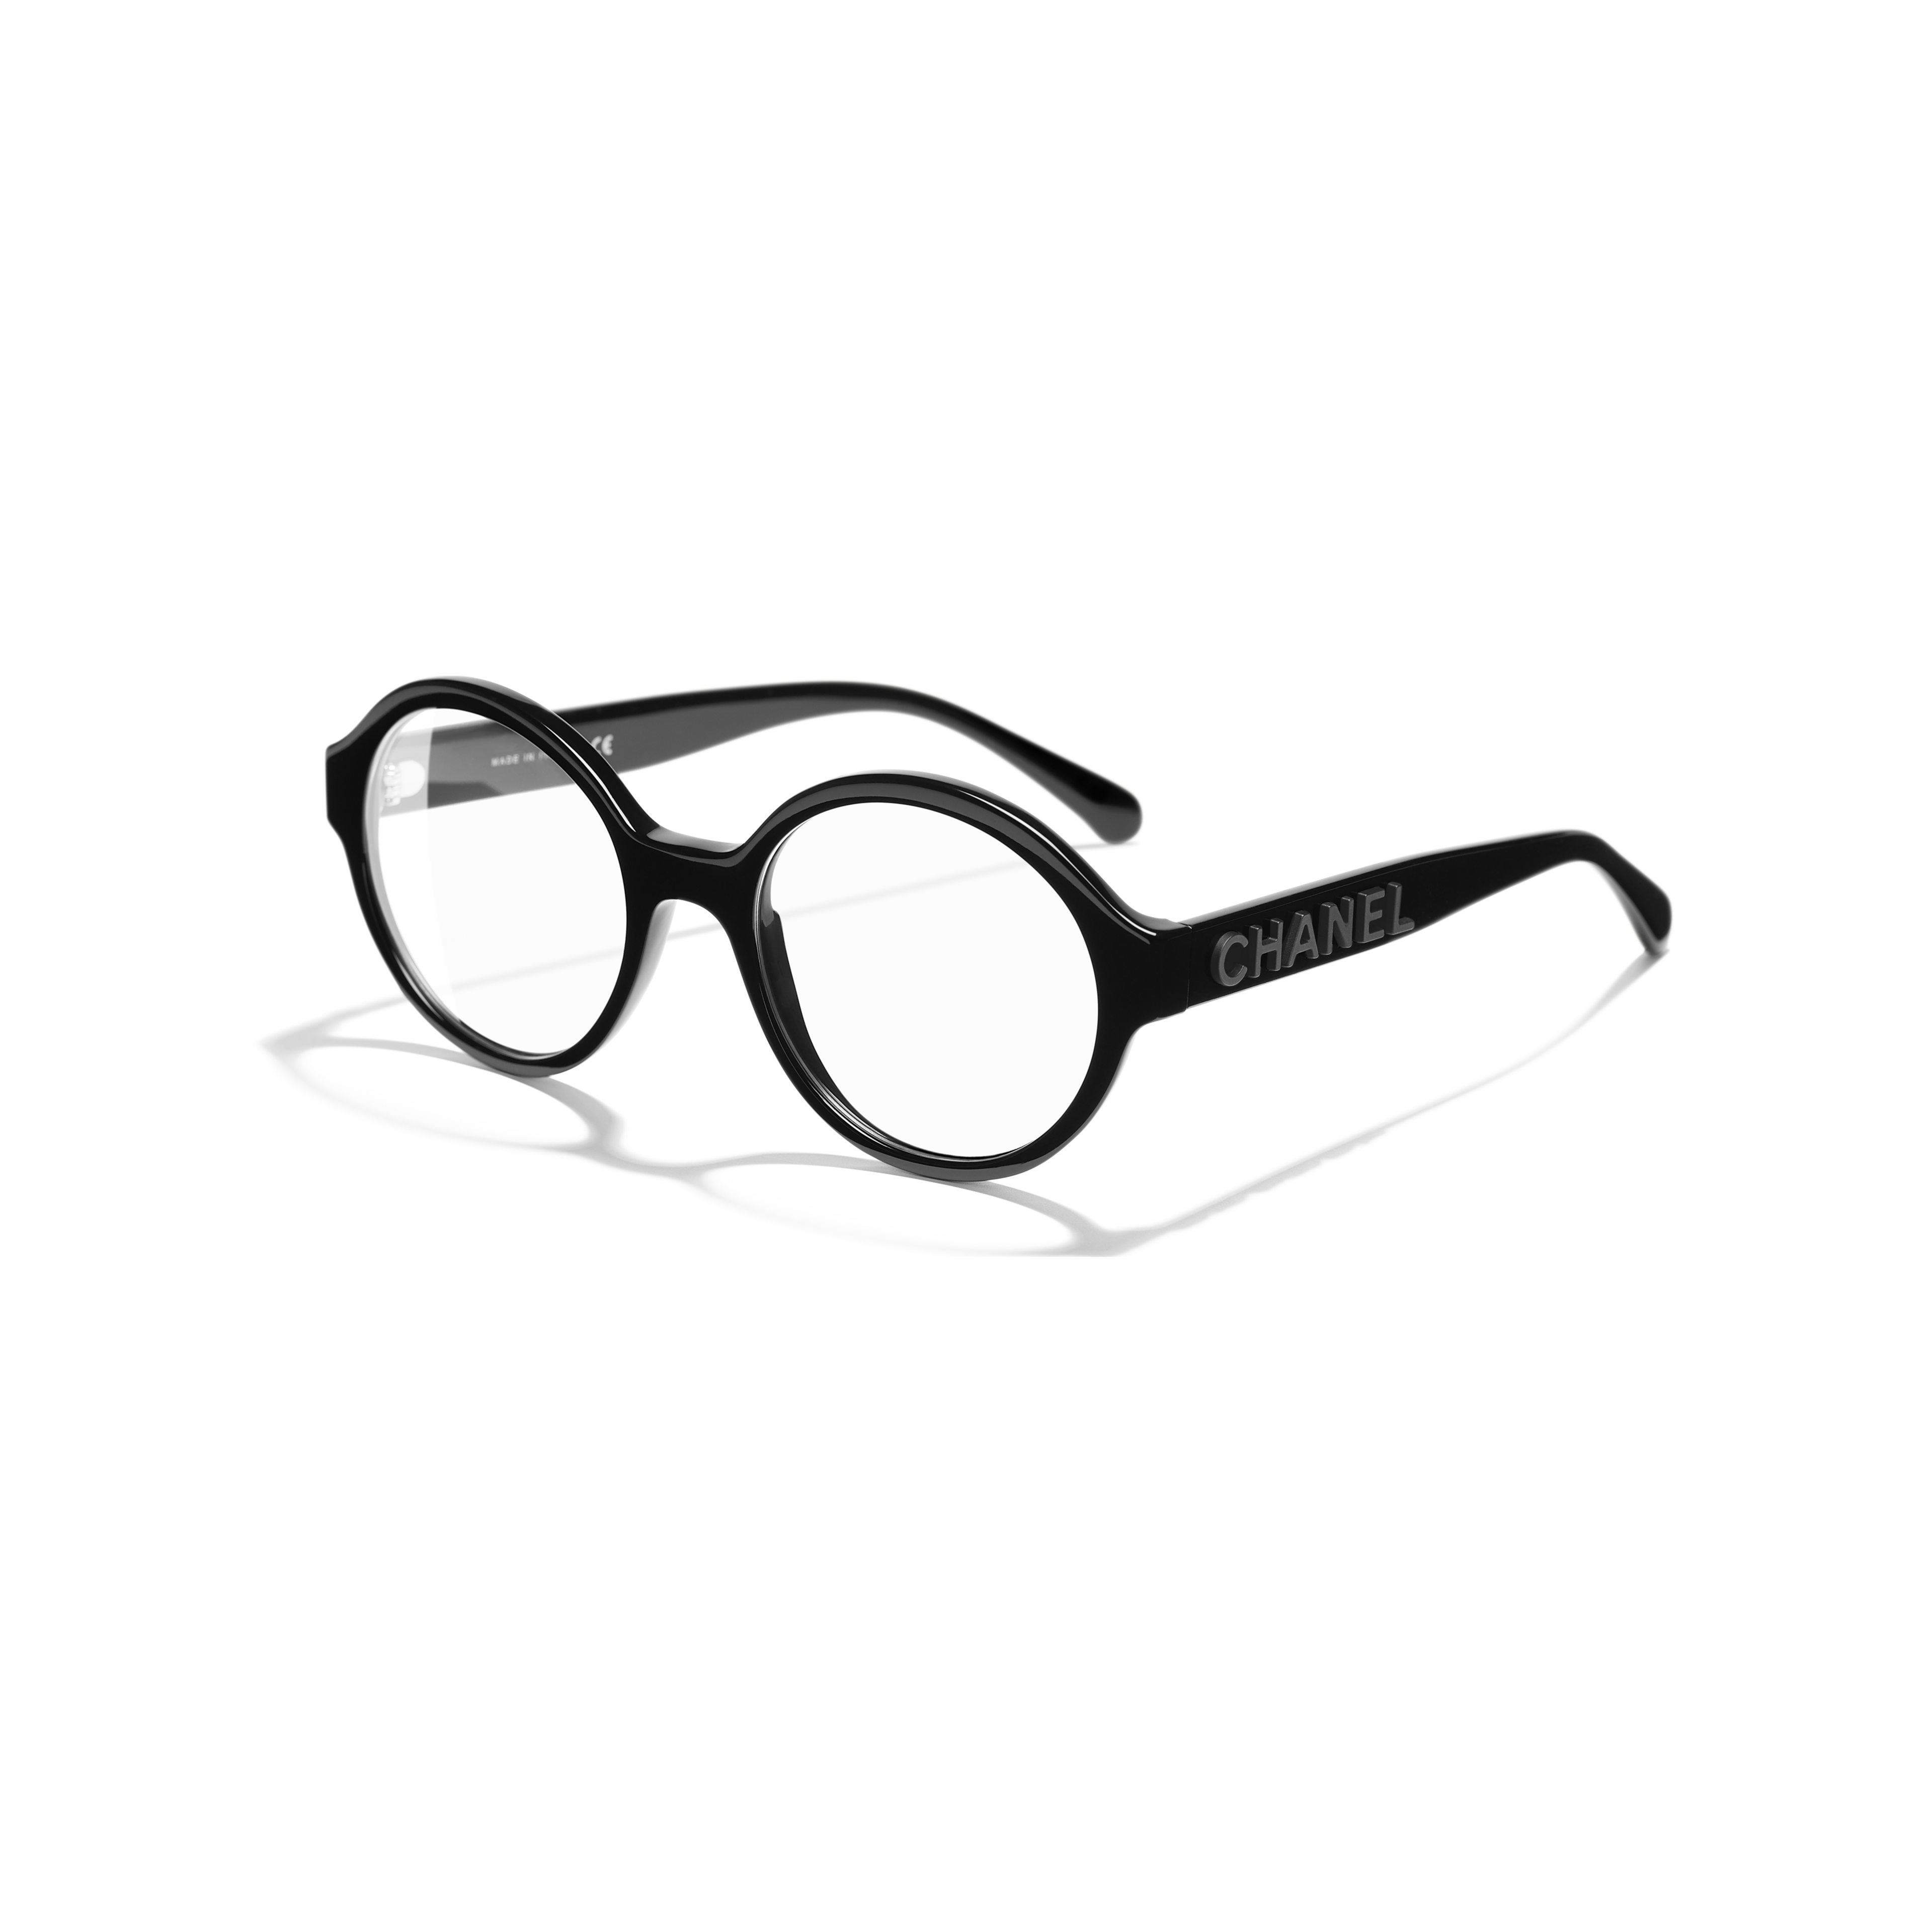 Round Eyeglasses - Black - Acetate - CHANEL - Extra view - see standard sized version